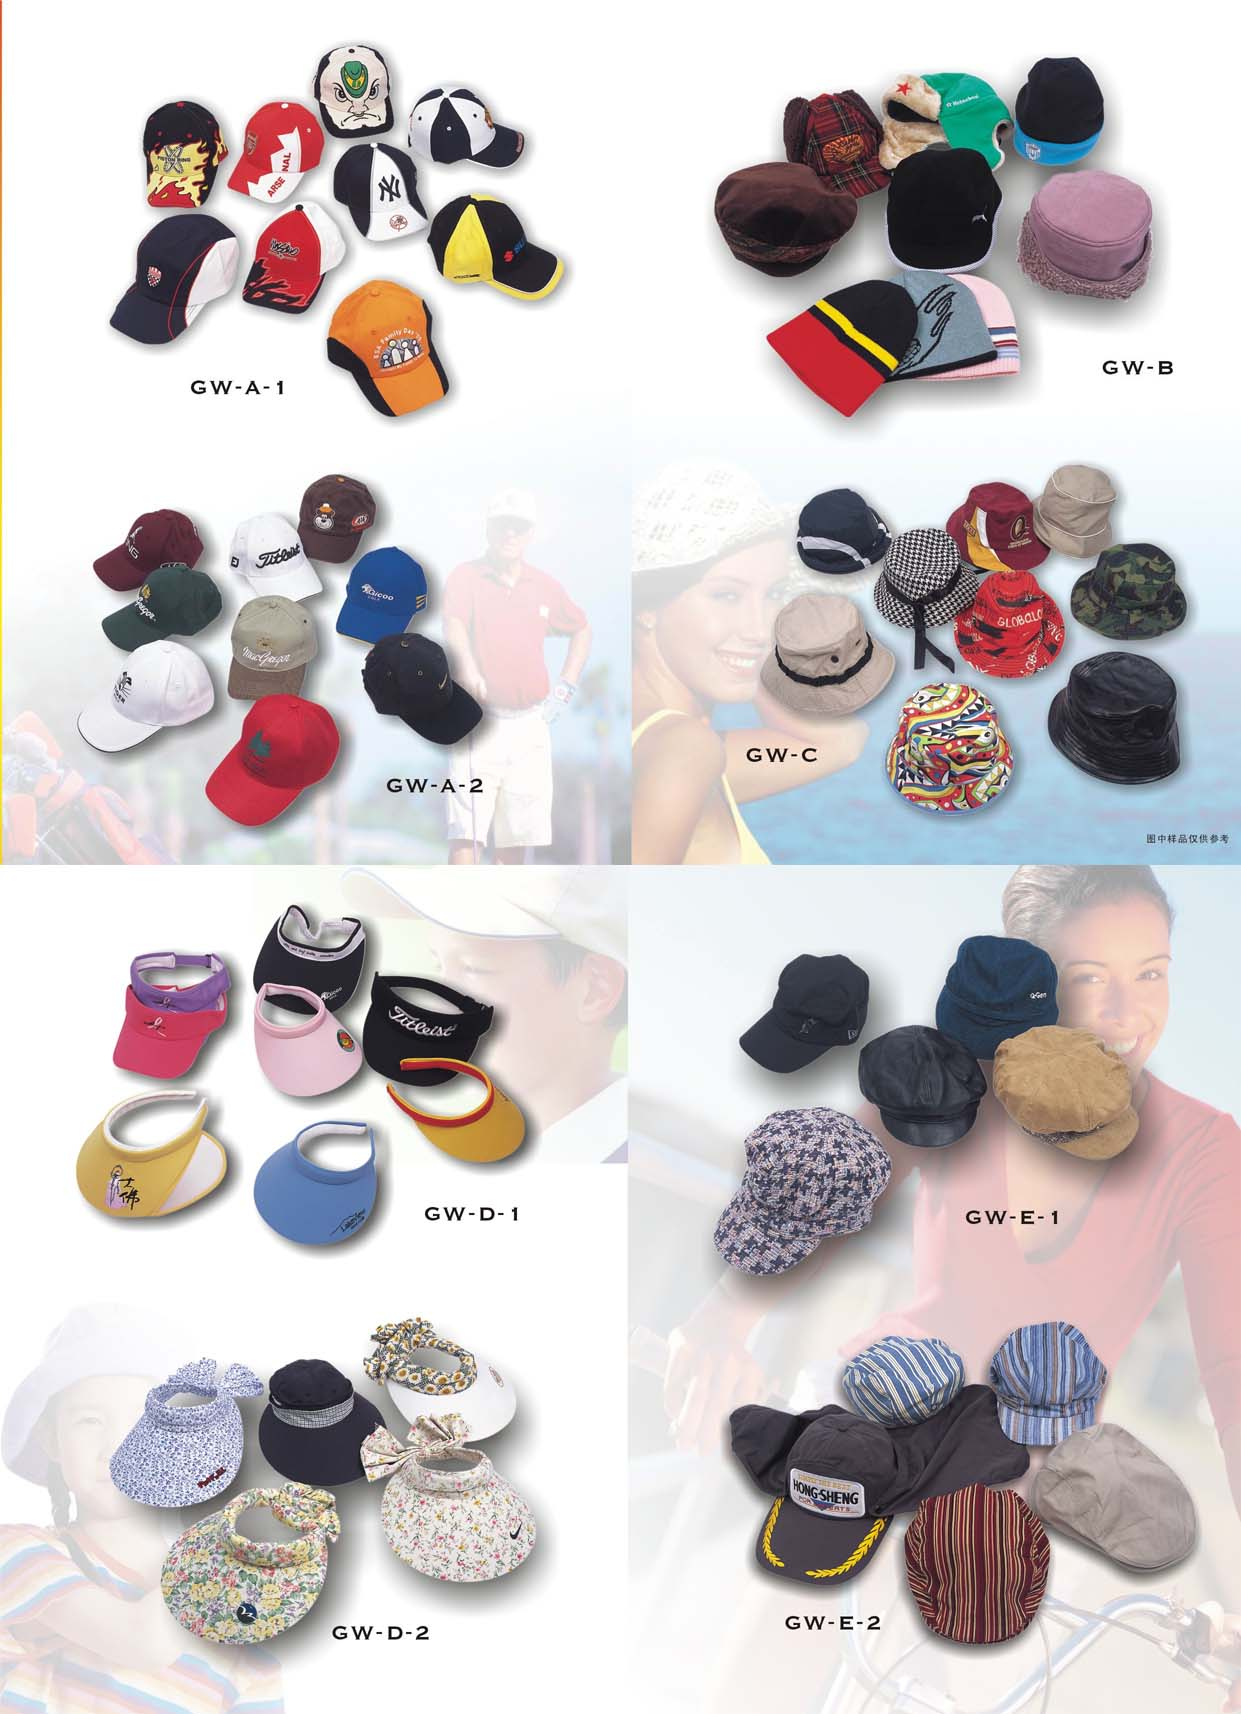 Shenzhen Grand Way Headwear Mft Co., Ltd